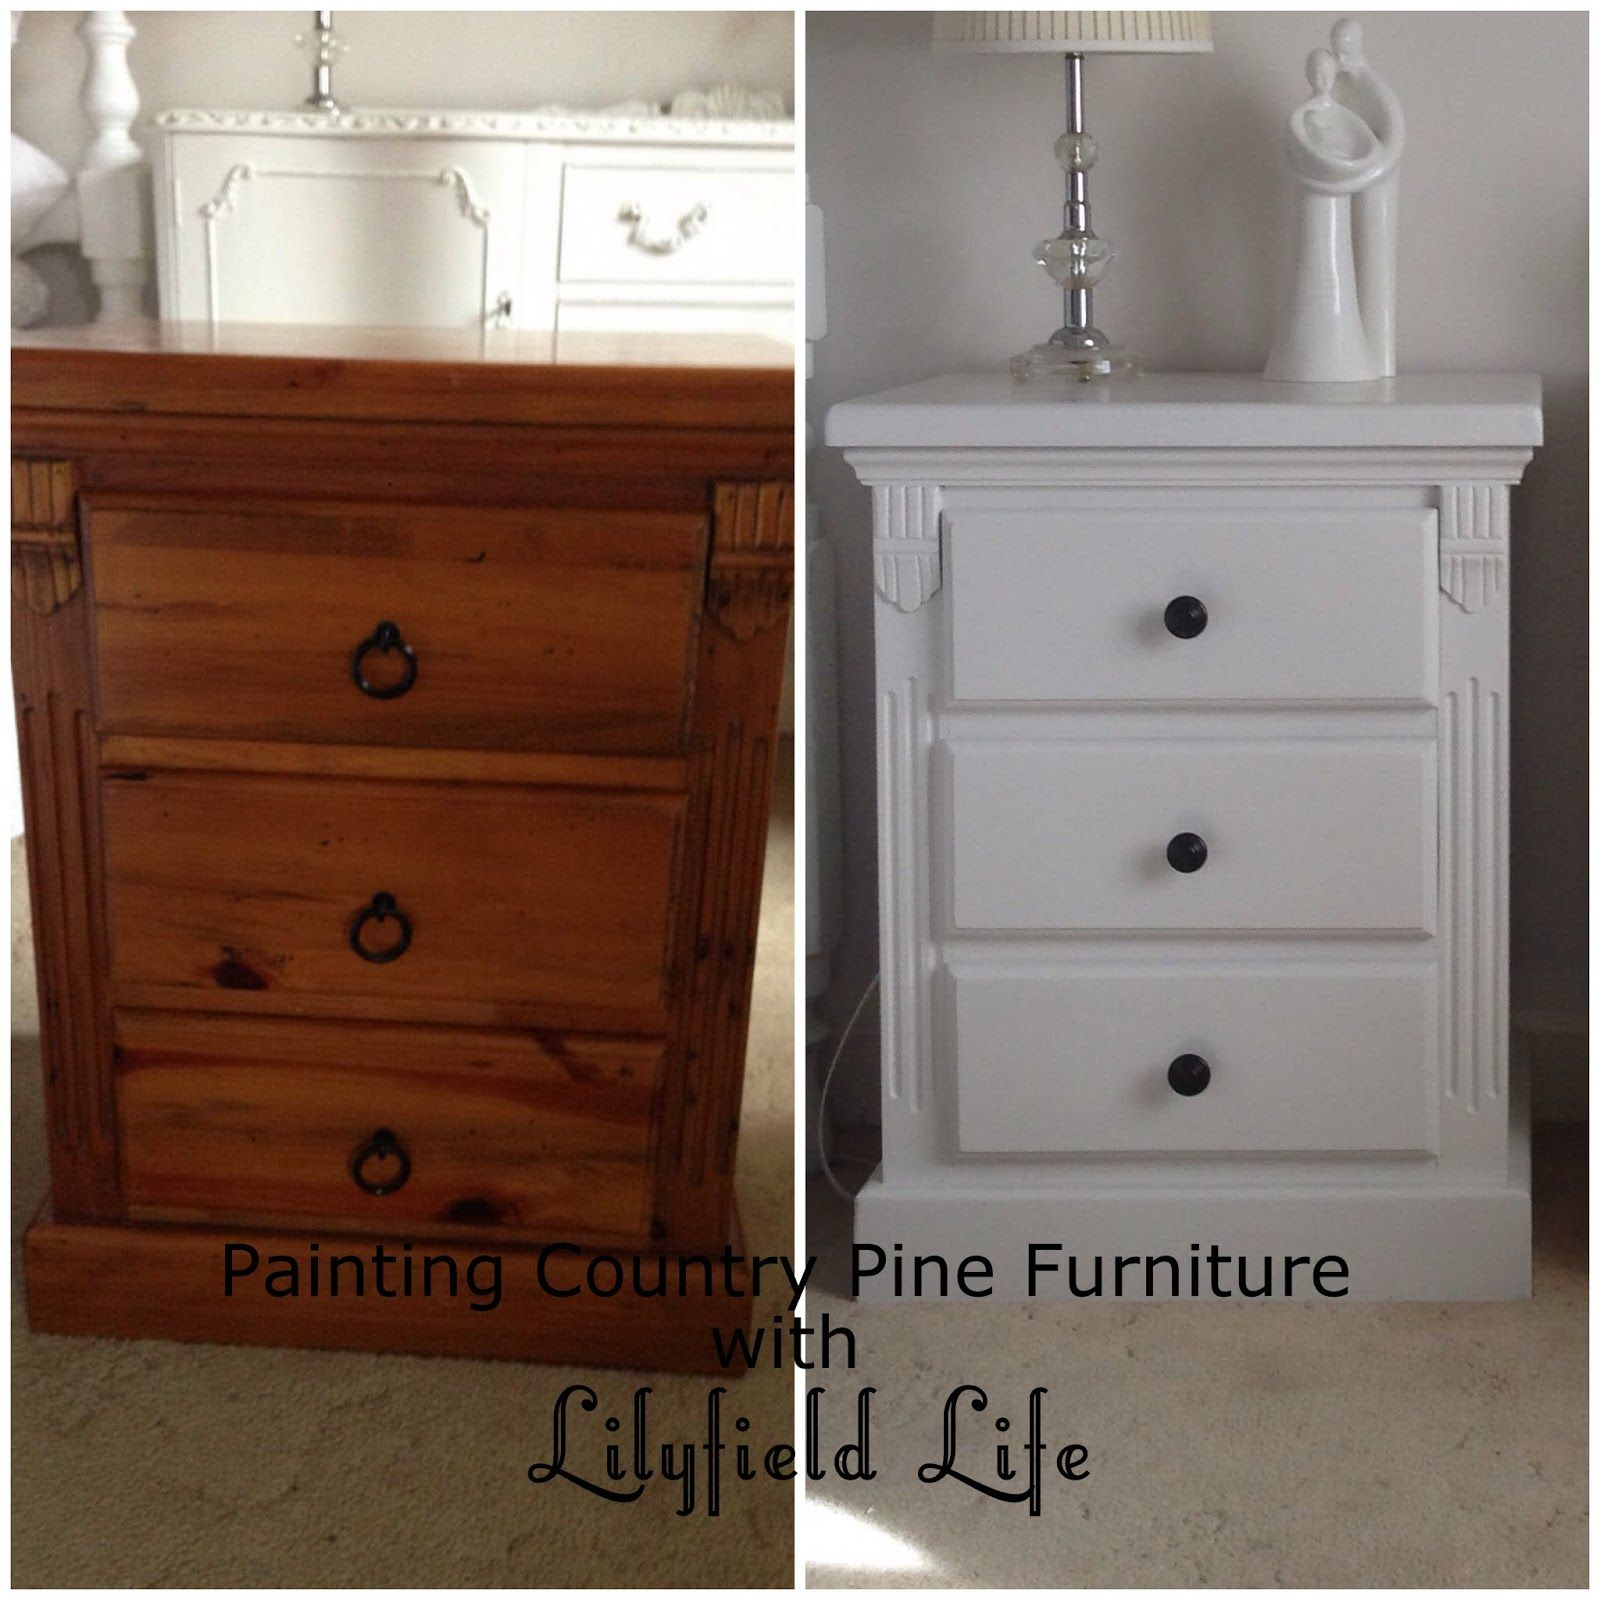 Lilyfield life painting country pine furniture dealing with distressed fake wormholes